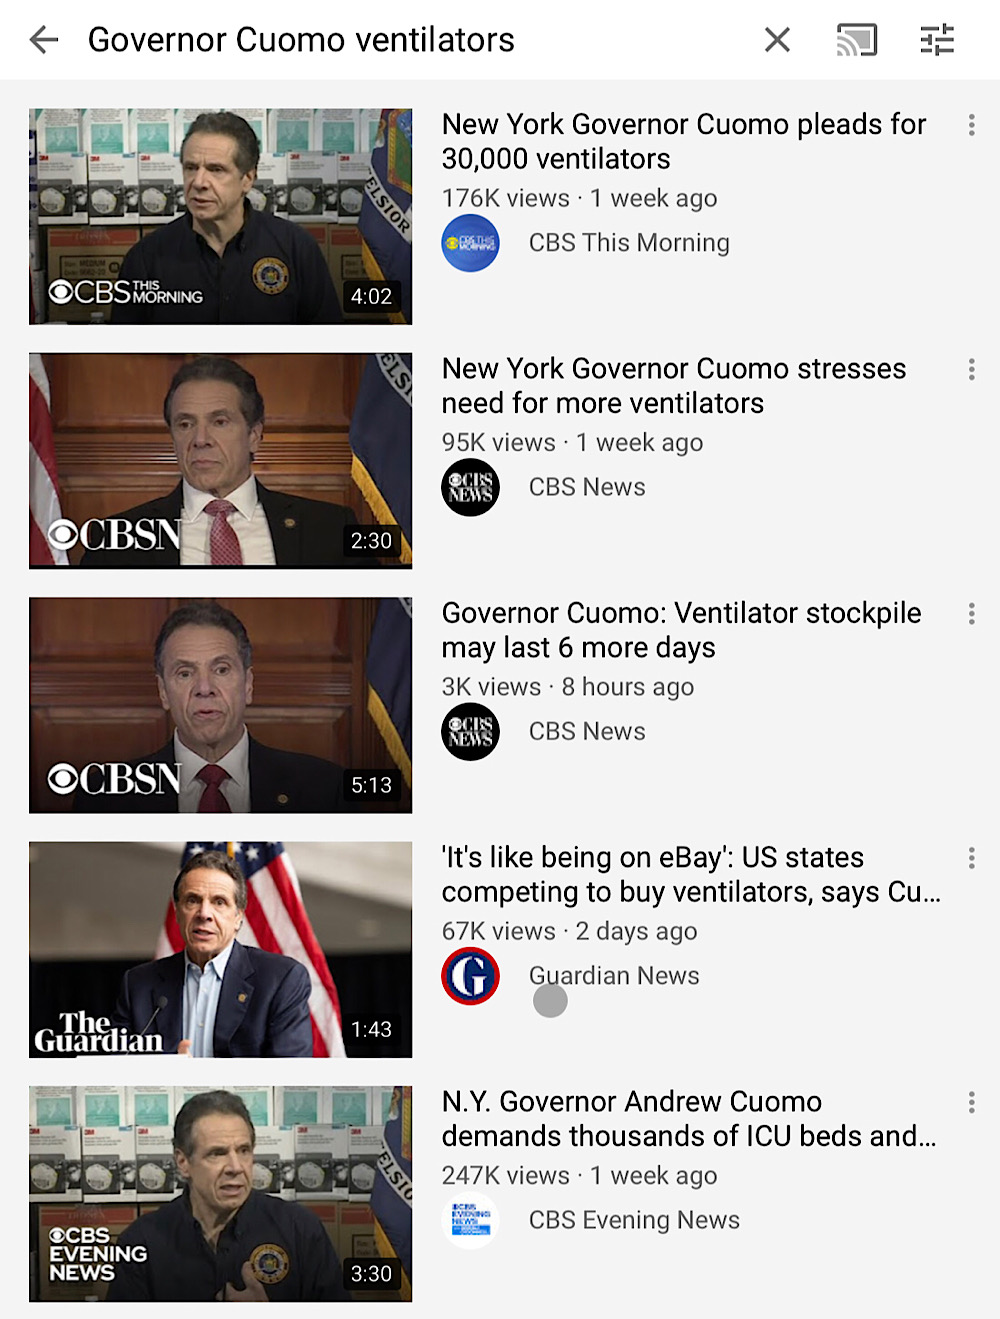 """The top search result for """"Governor Cuomo ventilators"""" on YouTube features what would seemingly be an example of misinforming users about health matters related to the coronavirus"""